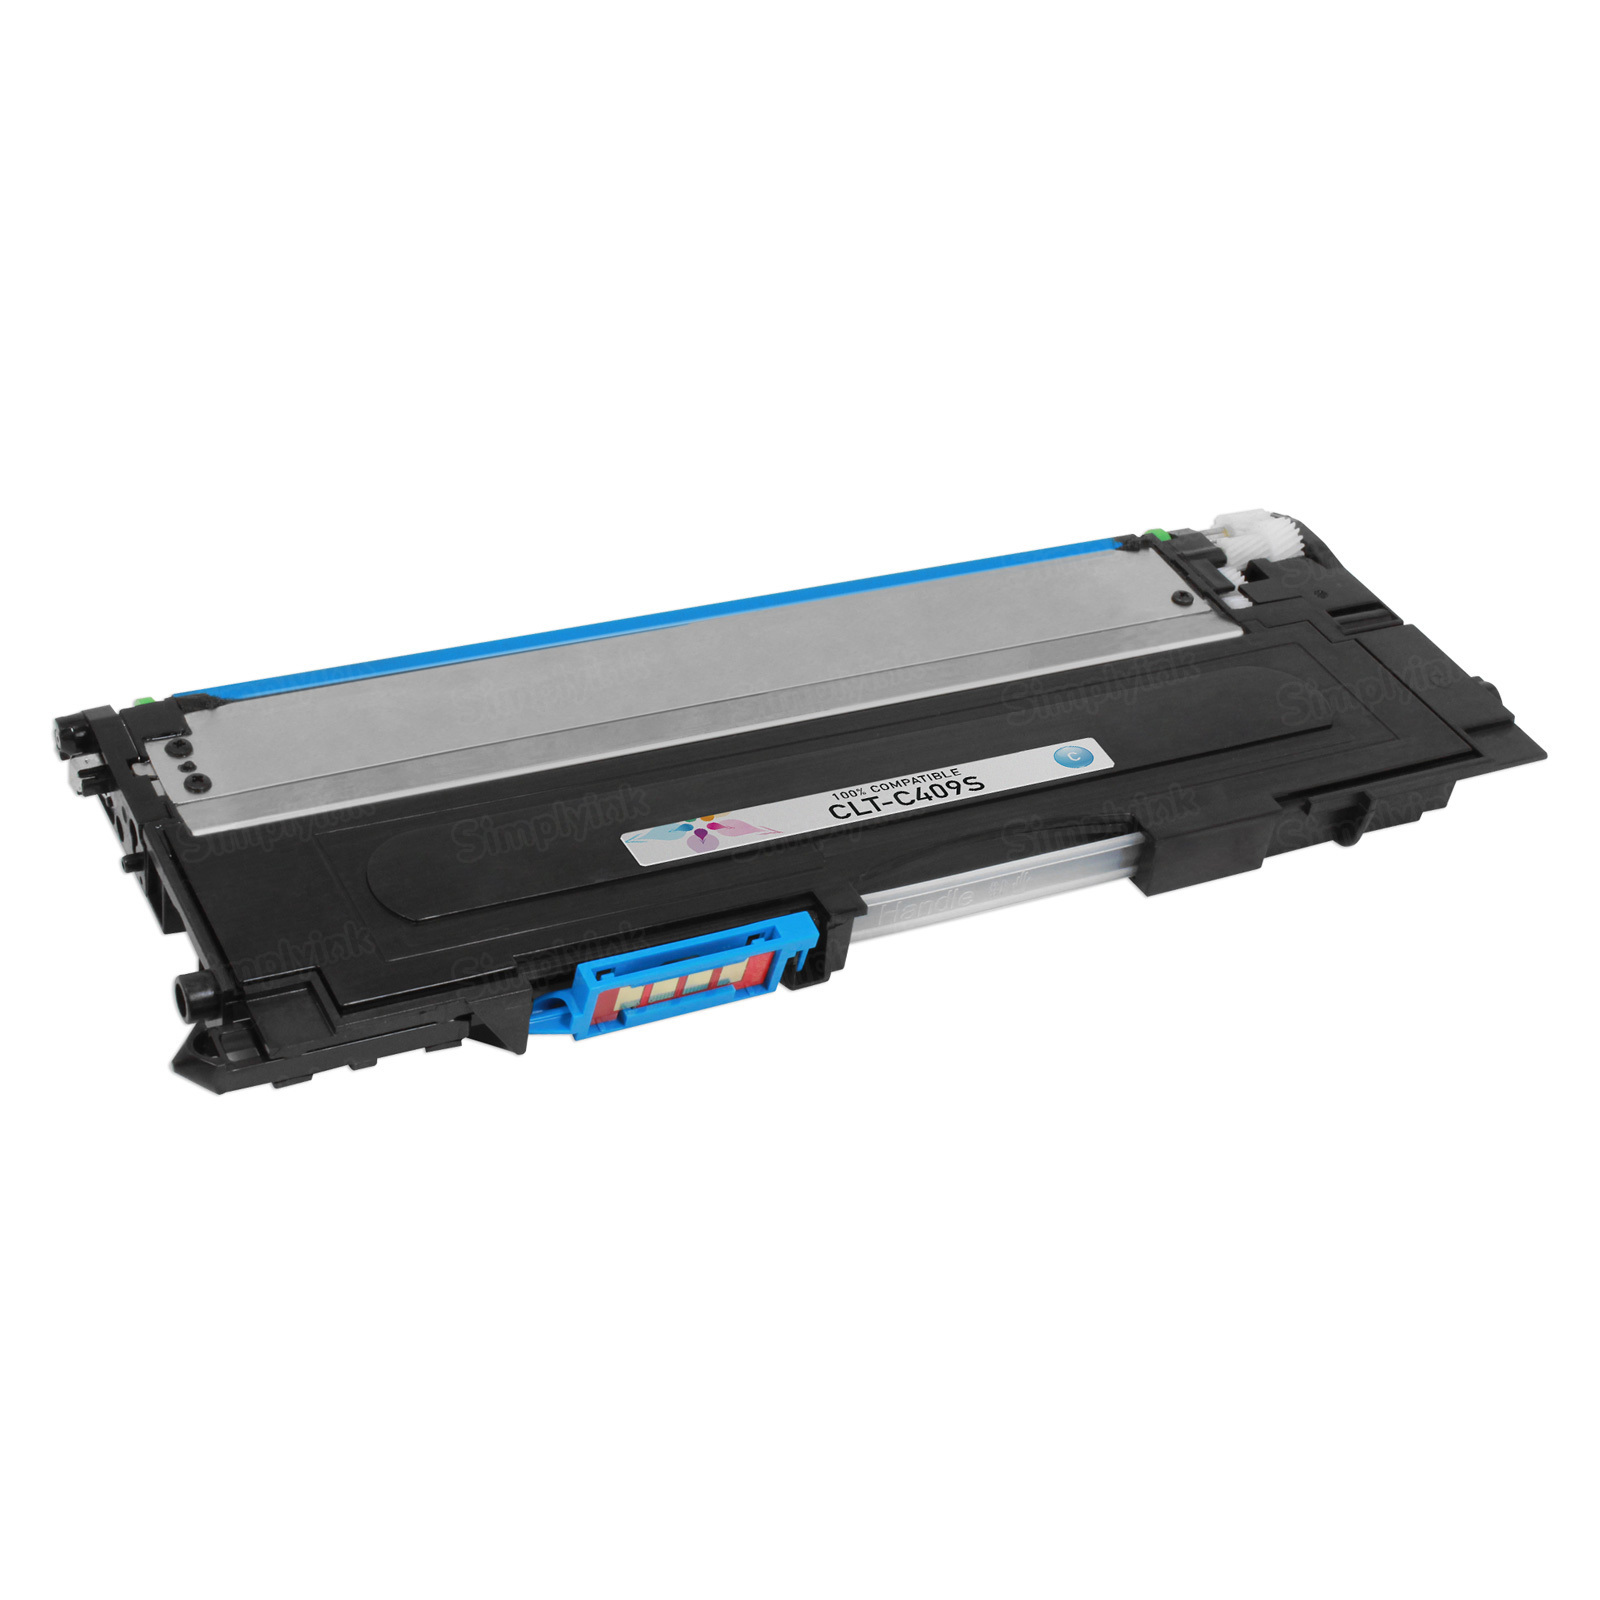 Compatible Alternative CLT-C409S Cyan Toner for use in Samsung CLP-315 & CLX-3175 Printers